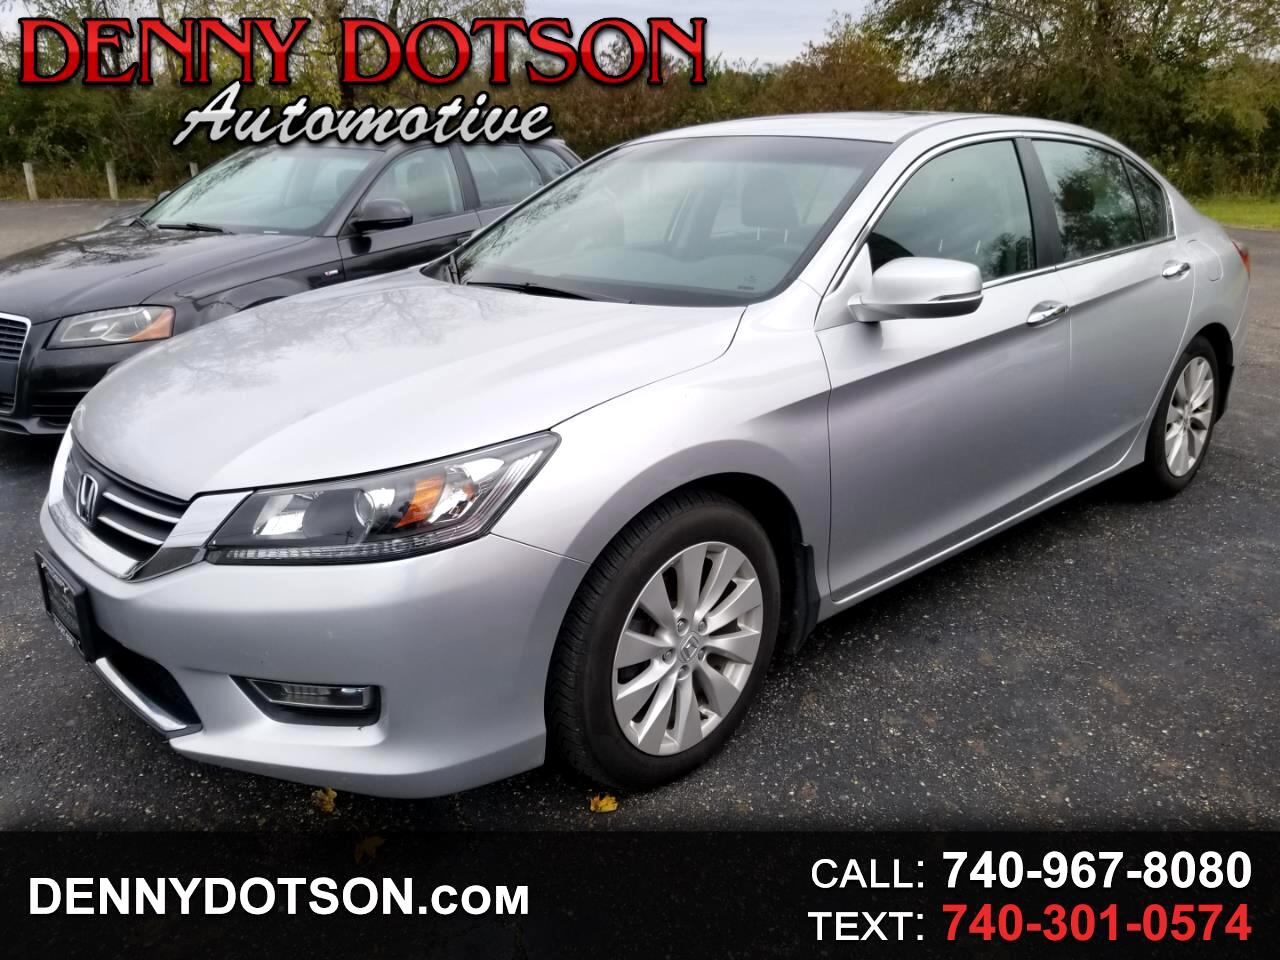 2013 Honda Accord 4dr Sedan EX Auto